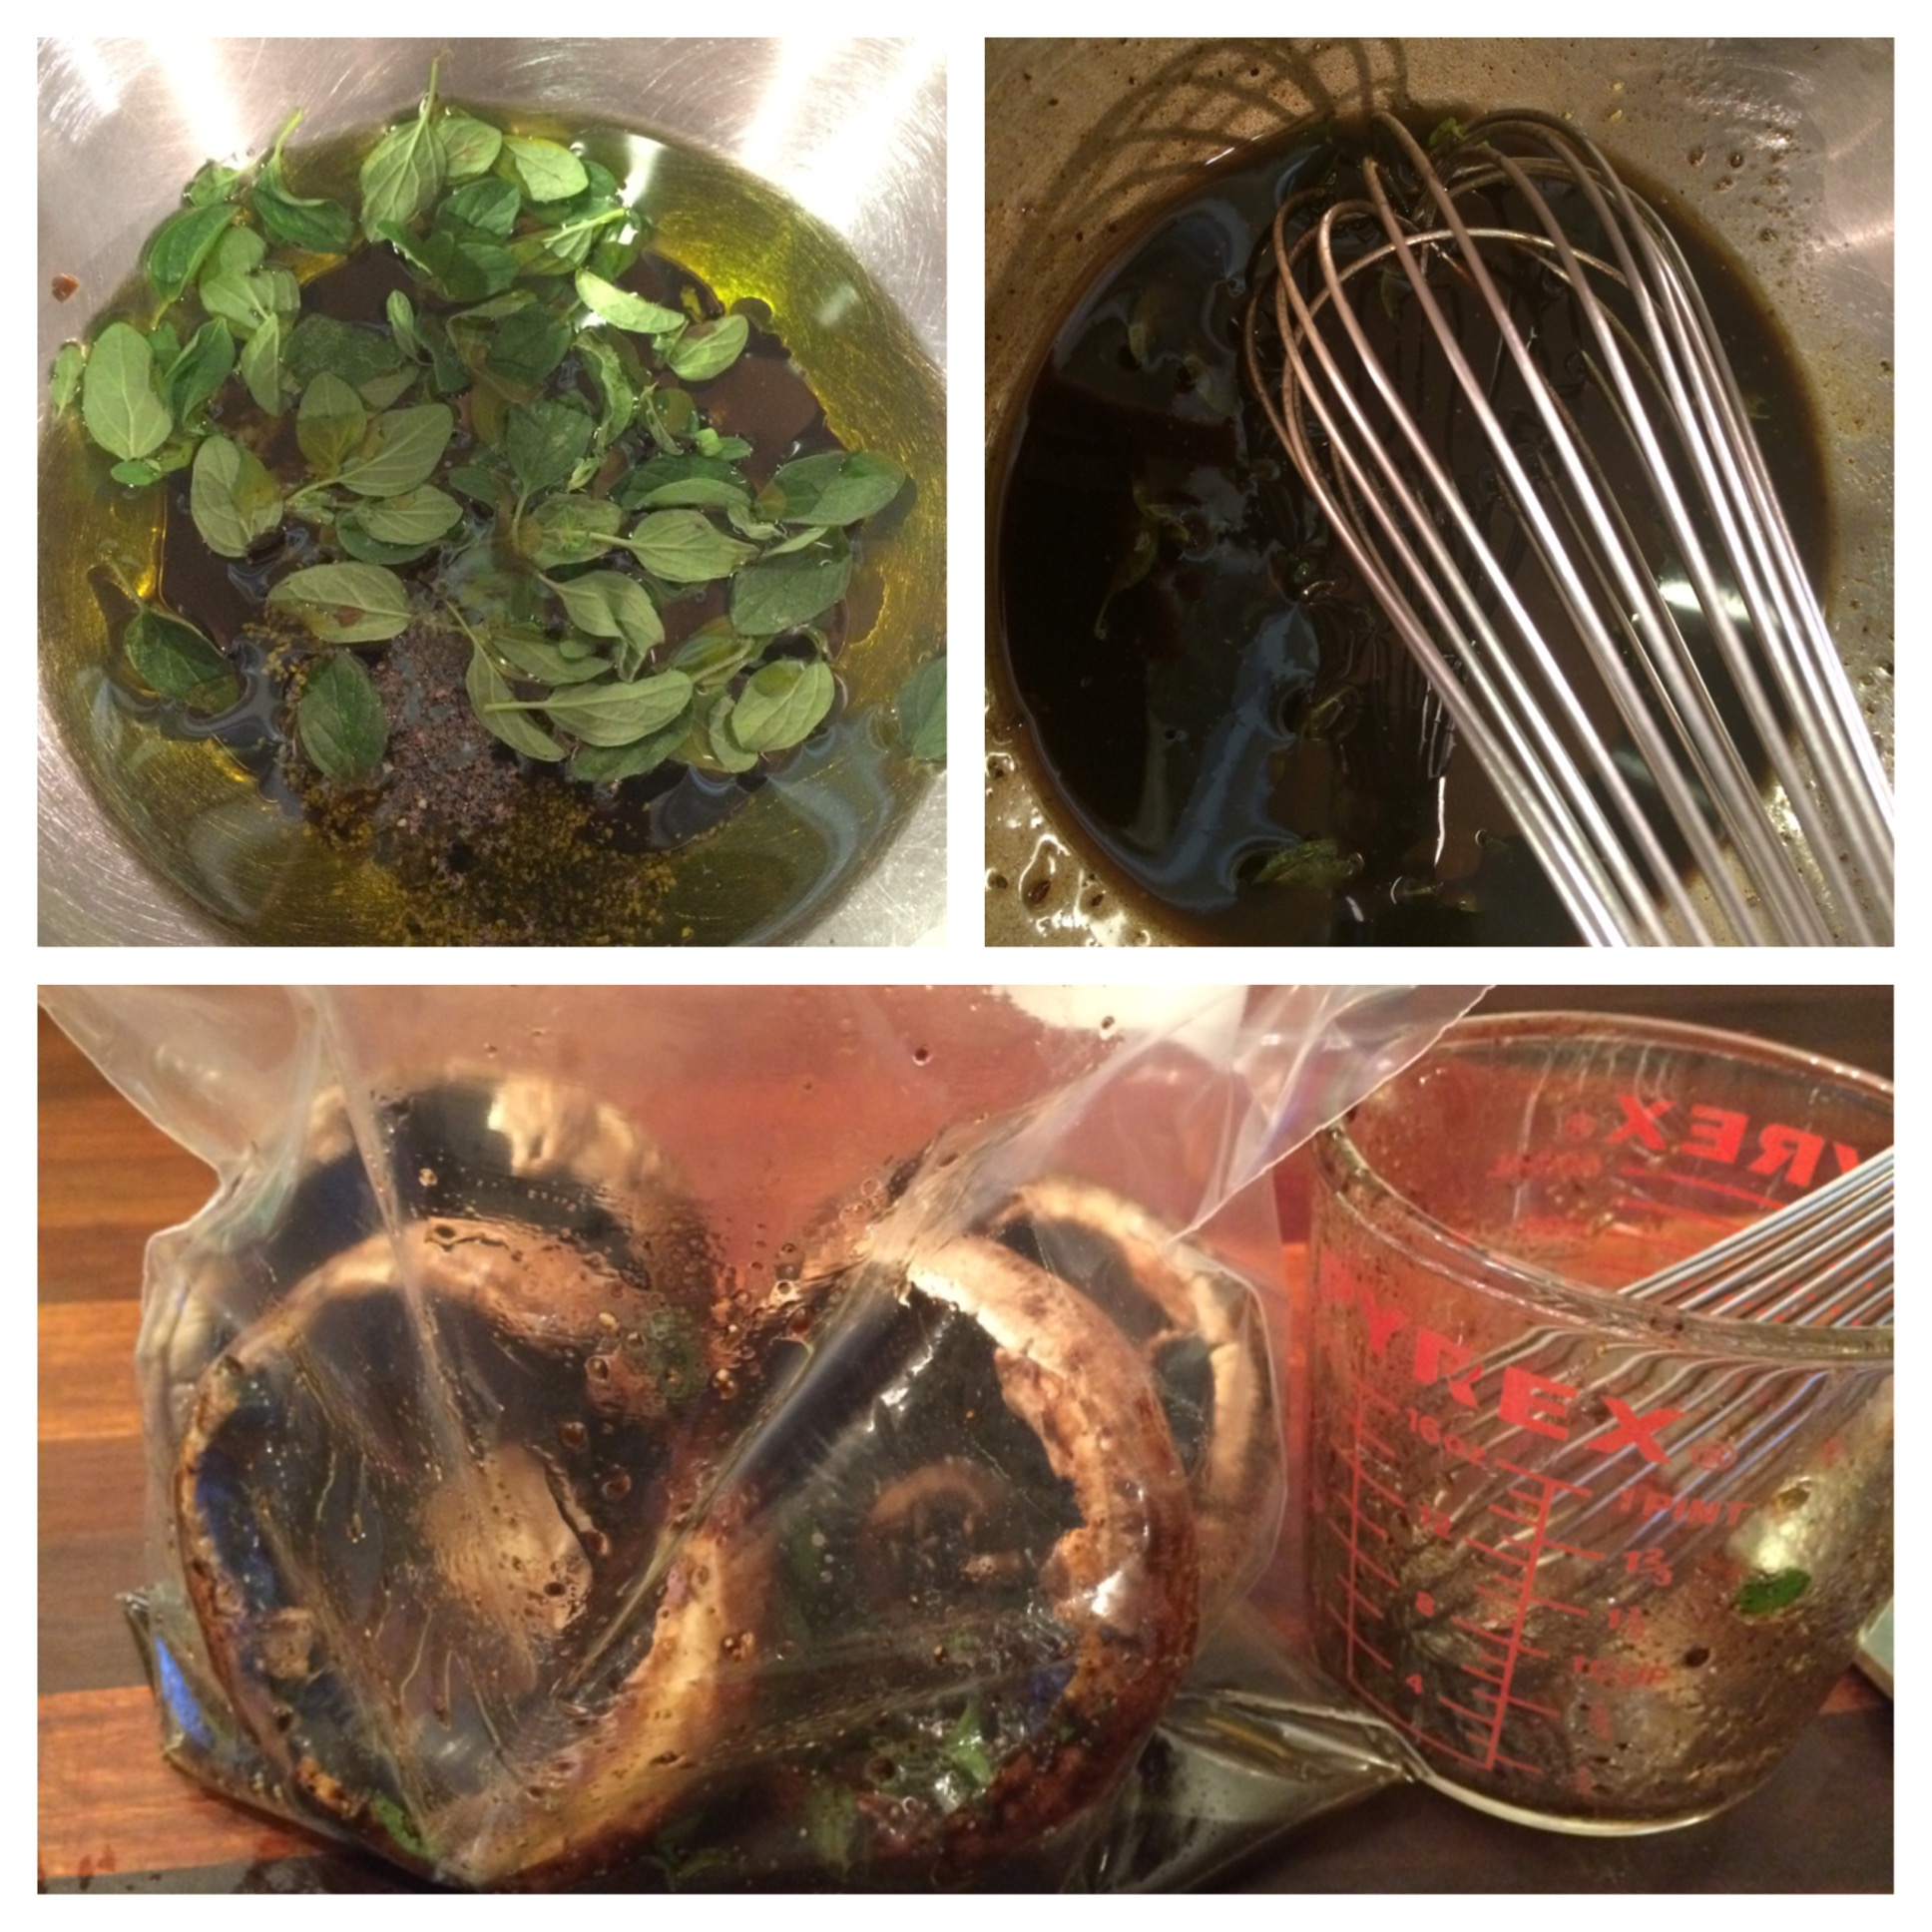 The first time I made this I used a small mixing bowl for the marinade. The second time, I used a large pyrex mixing cup, as pictured at bottom. This makes the pouring of the marinade very easy.